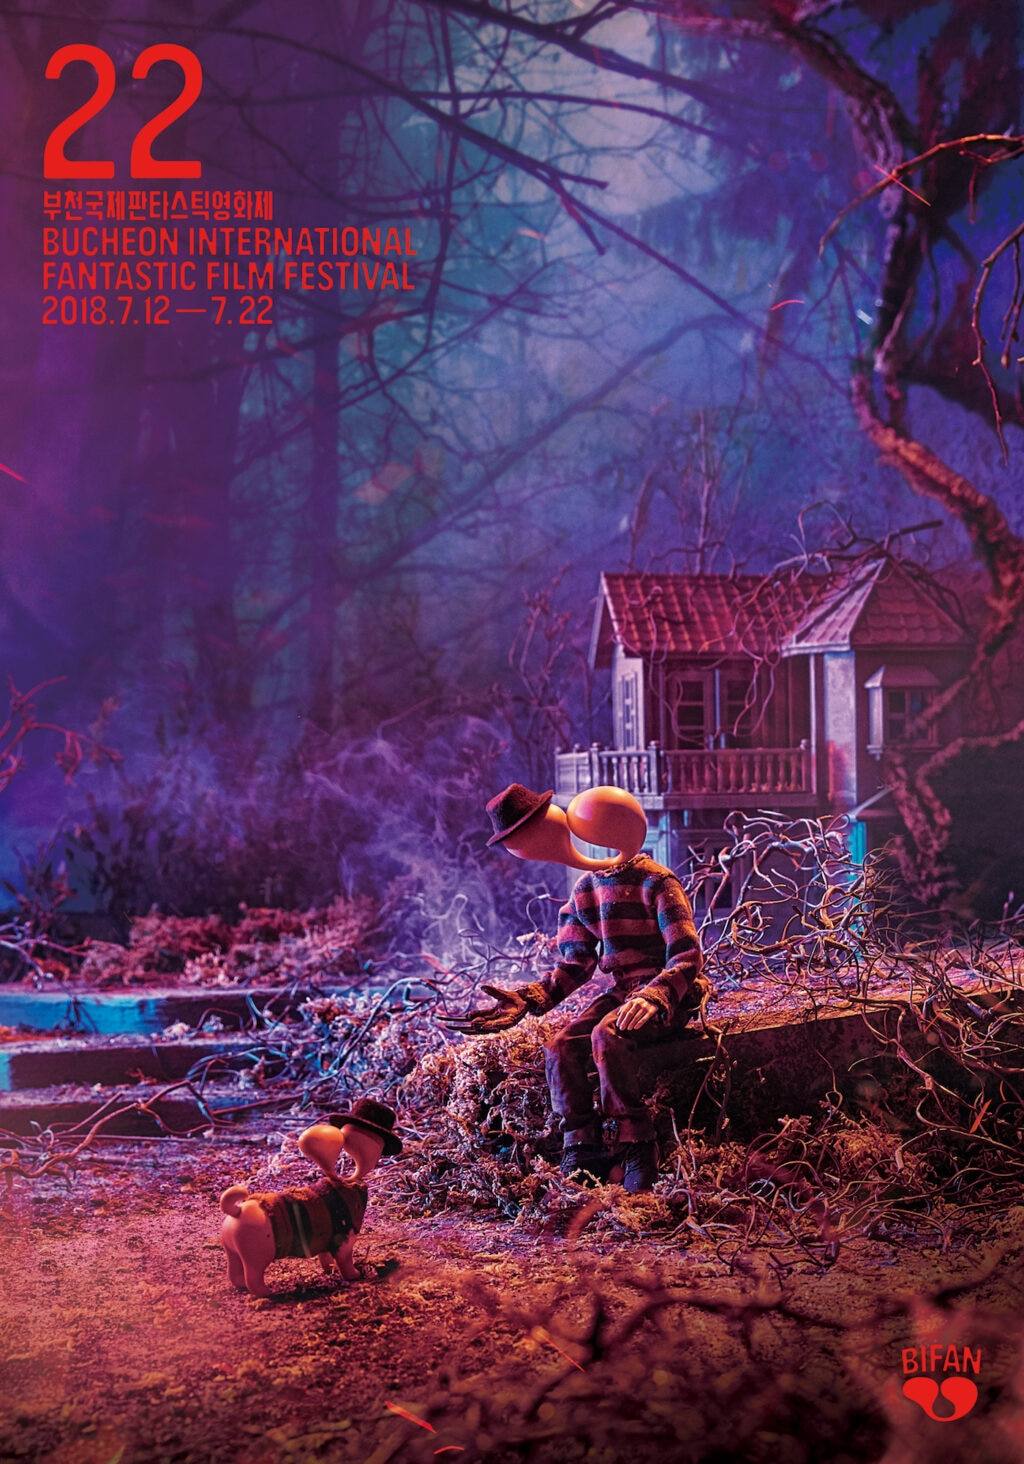 22nd BIFAN Official Poster 1 1024x1464 - BIFAN 2018: Official Posters See Freddy Krueger as a Dog Owner and It's Adorable